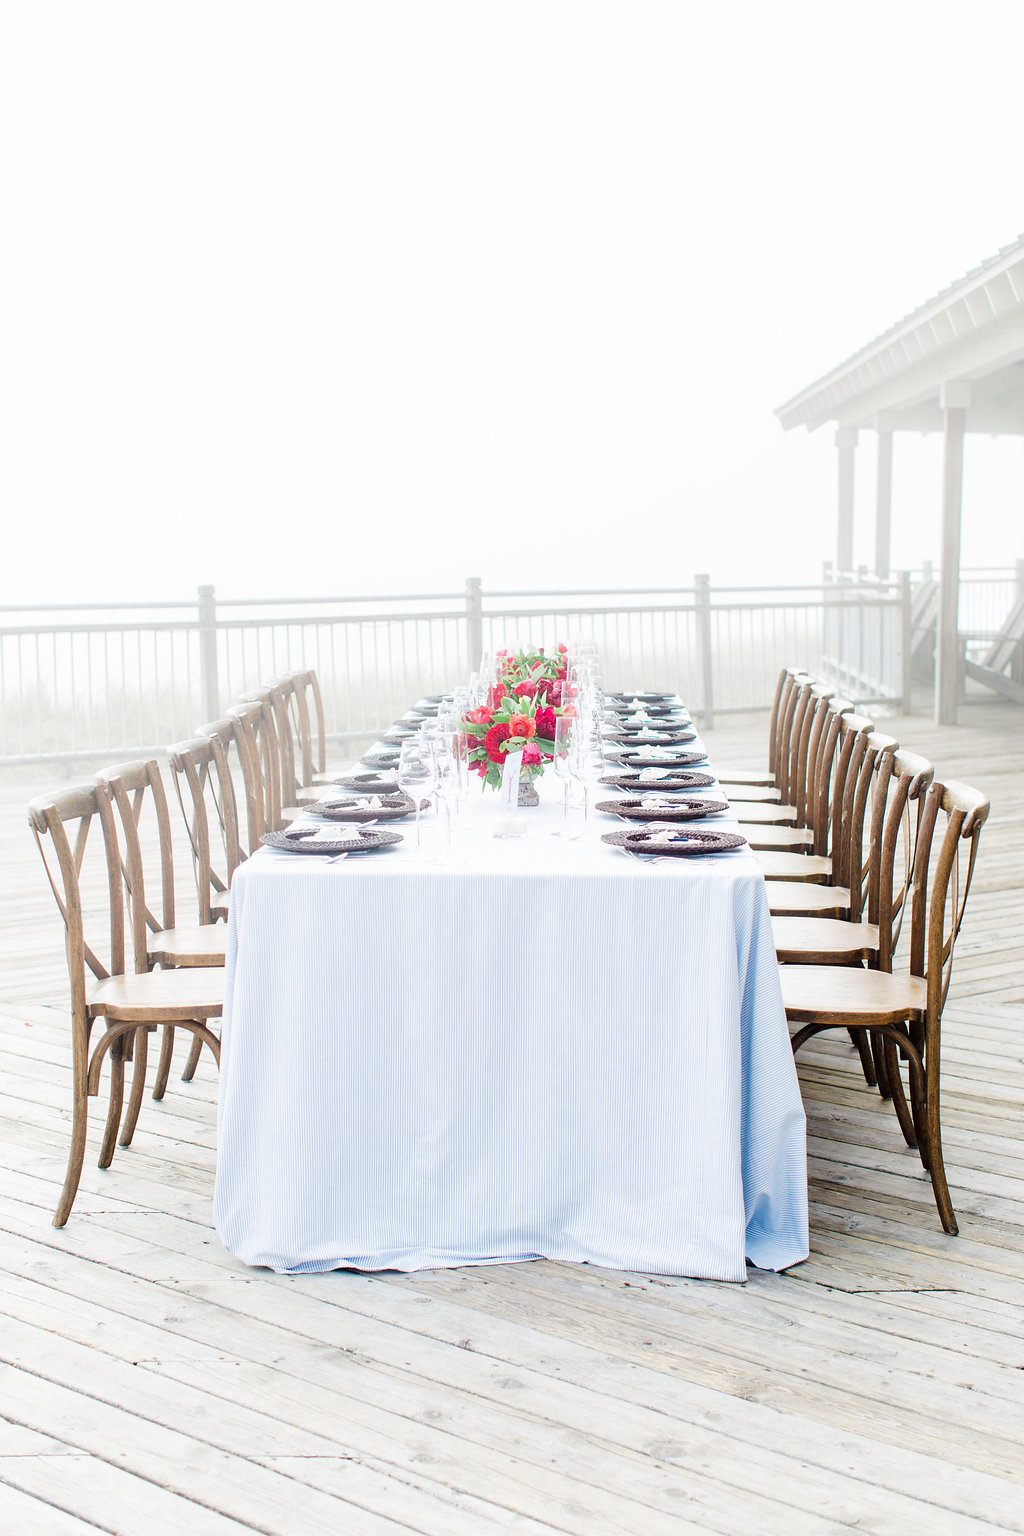 Table set on a deck for a misty lakeside wedding